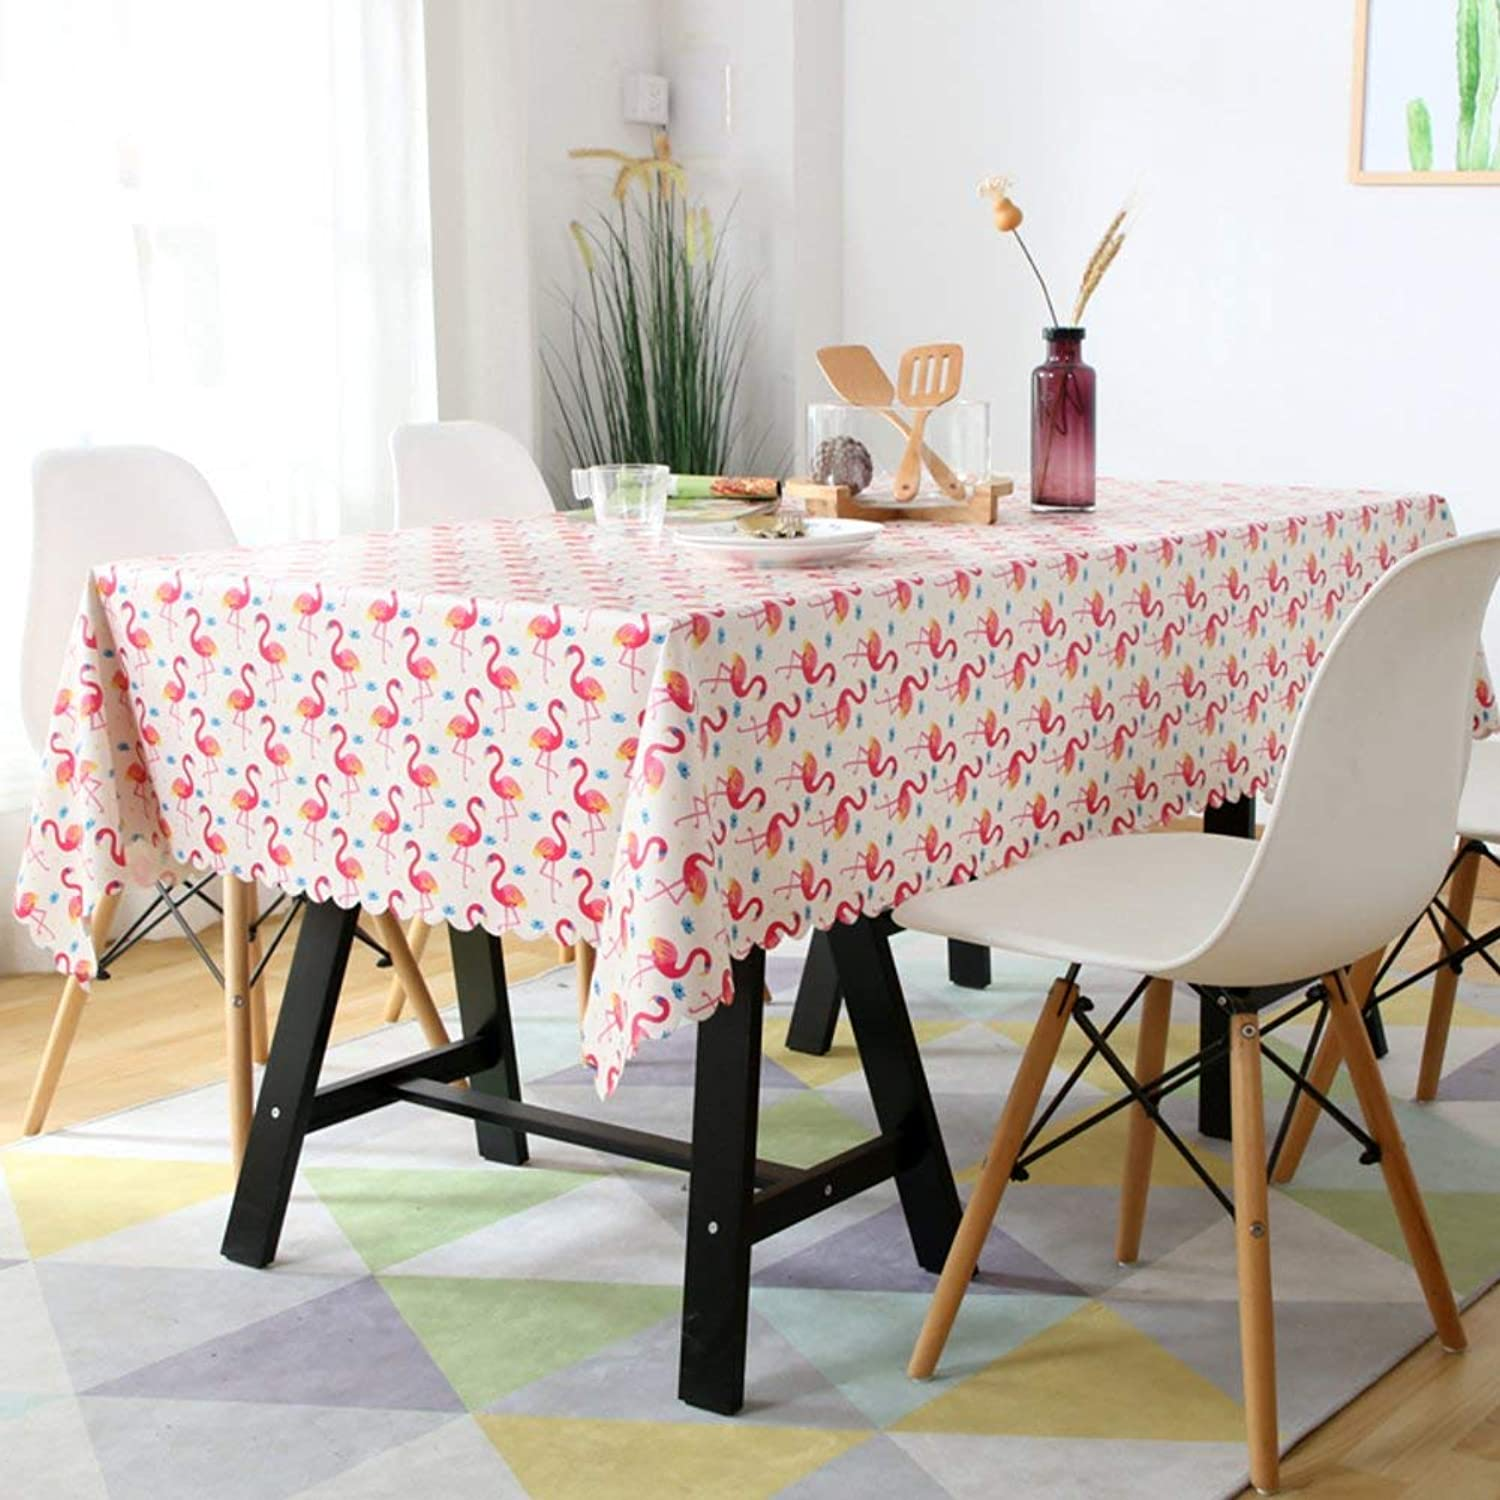 muchas sorpresas WENYAO Tablecloth Oil-Proof Anti-Hot Waterproof Waterproof Waterproof Cloth Art Tabcoffee tabplacemat Continental rectangCotton and Linen Small Fresh,M_140x140cm  Tienda 2018